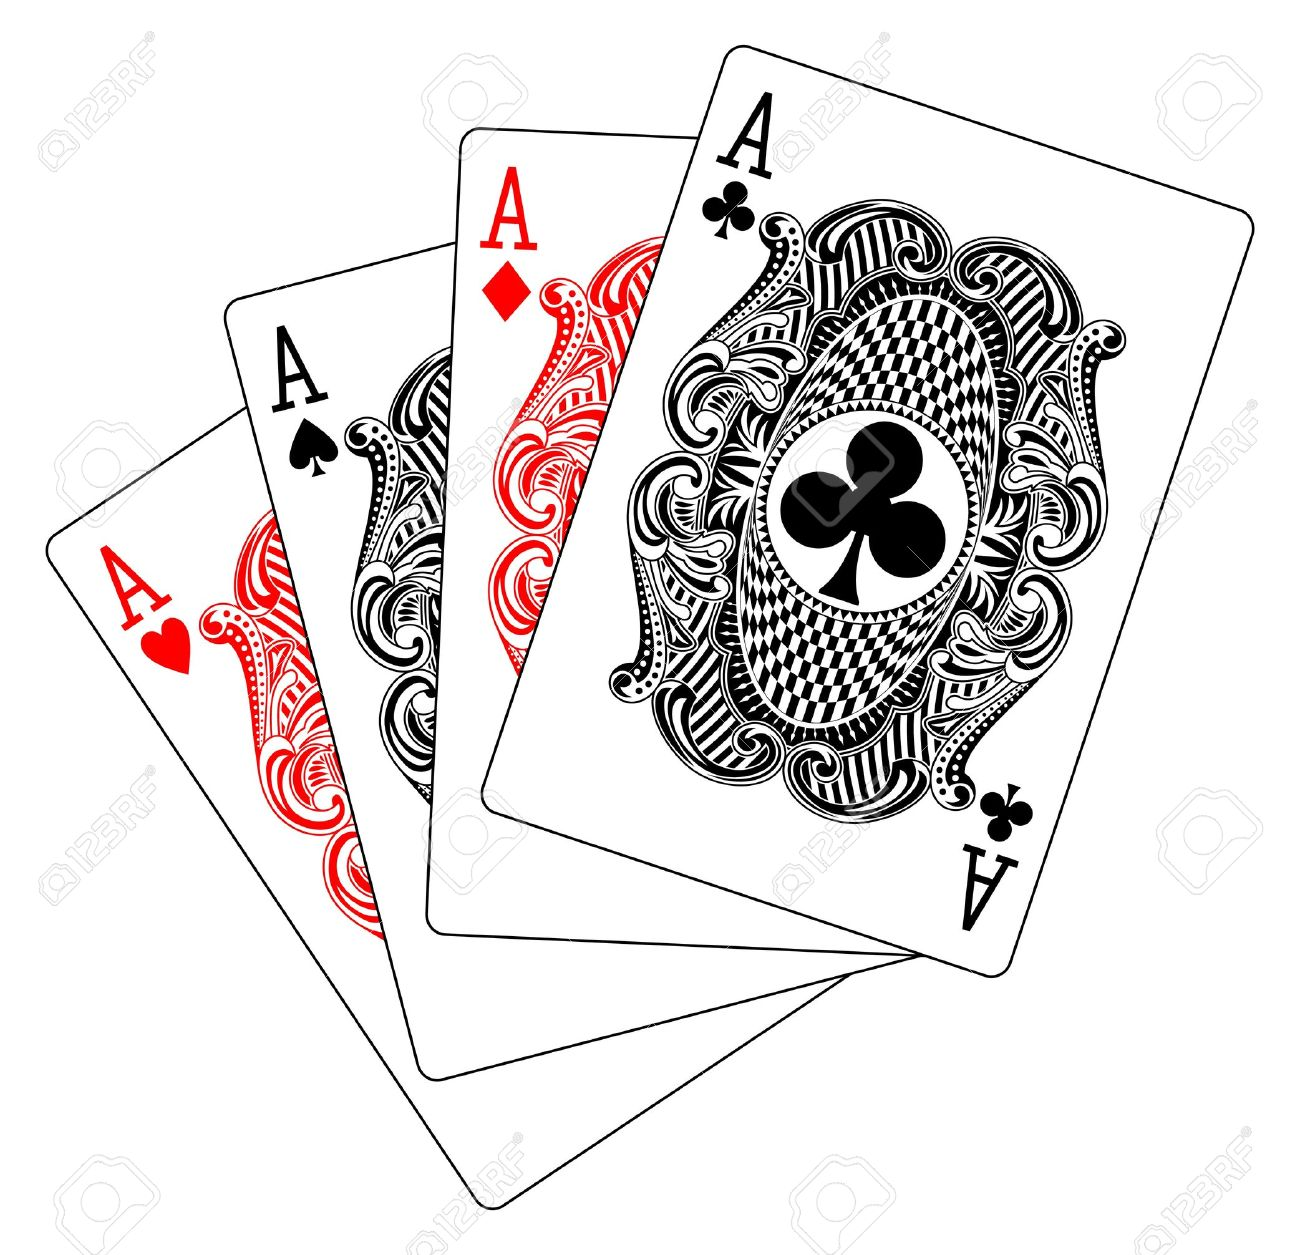 aces poker heart spade diamond club Stock Vector - 10996475